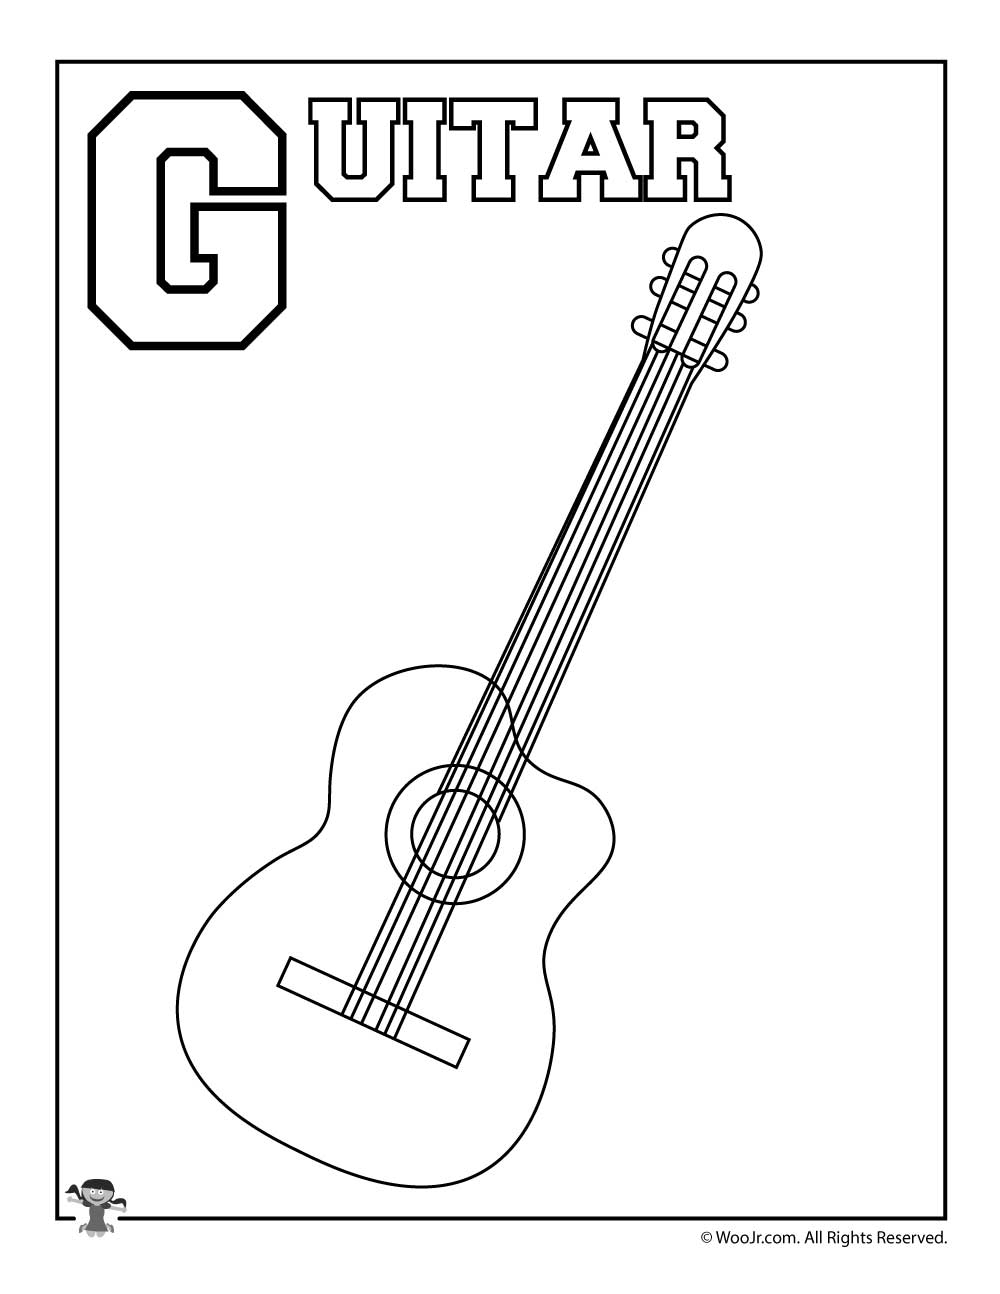 G Is For Guitar Coloring Page Woo Jr Kids Activities